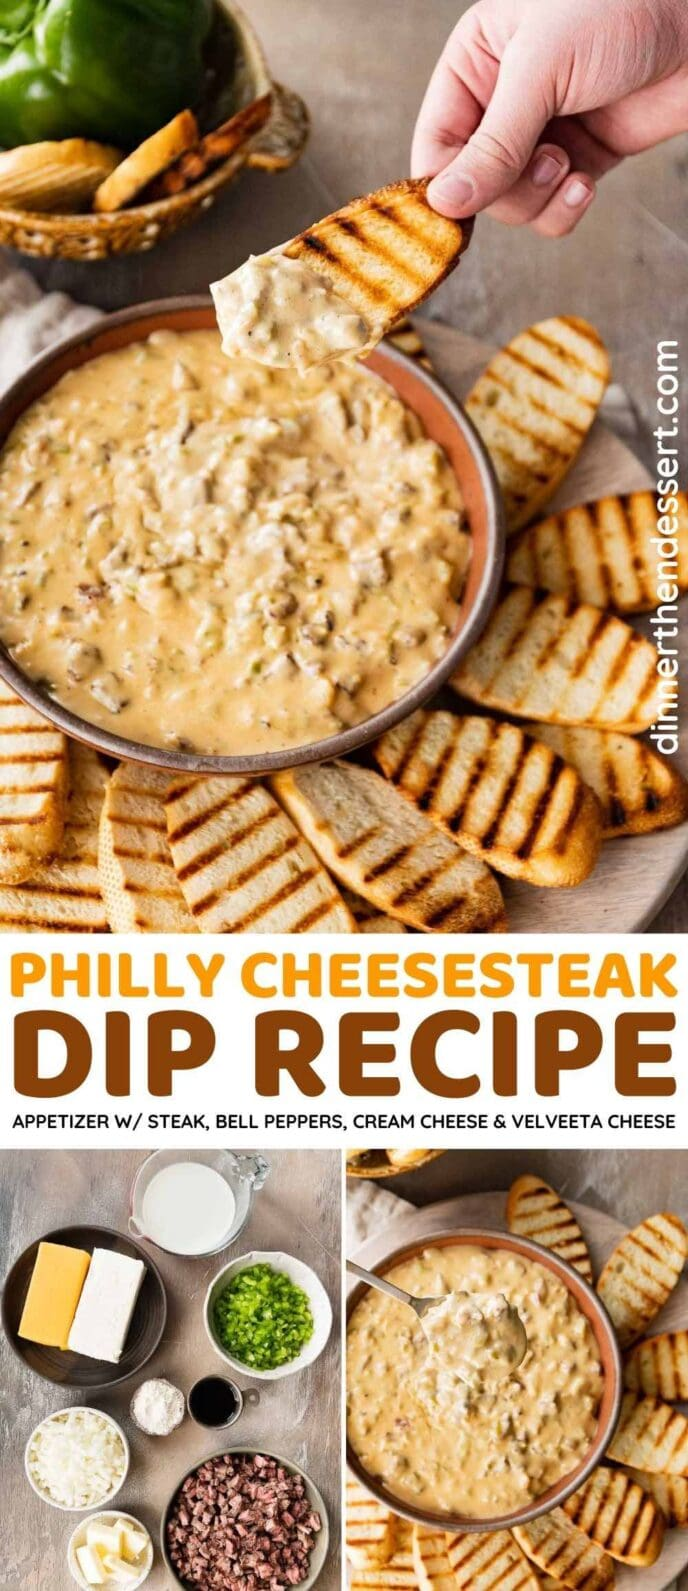 Philly Cheesesteak Dip collage